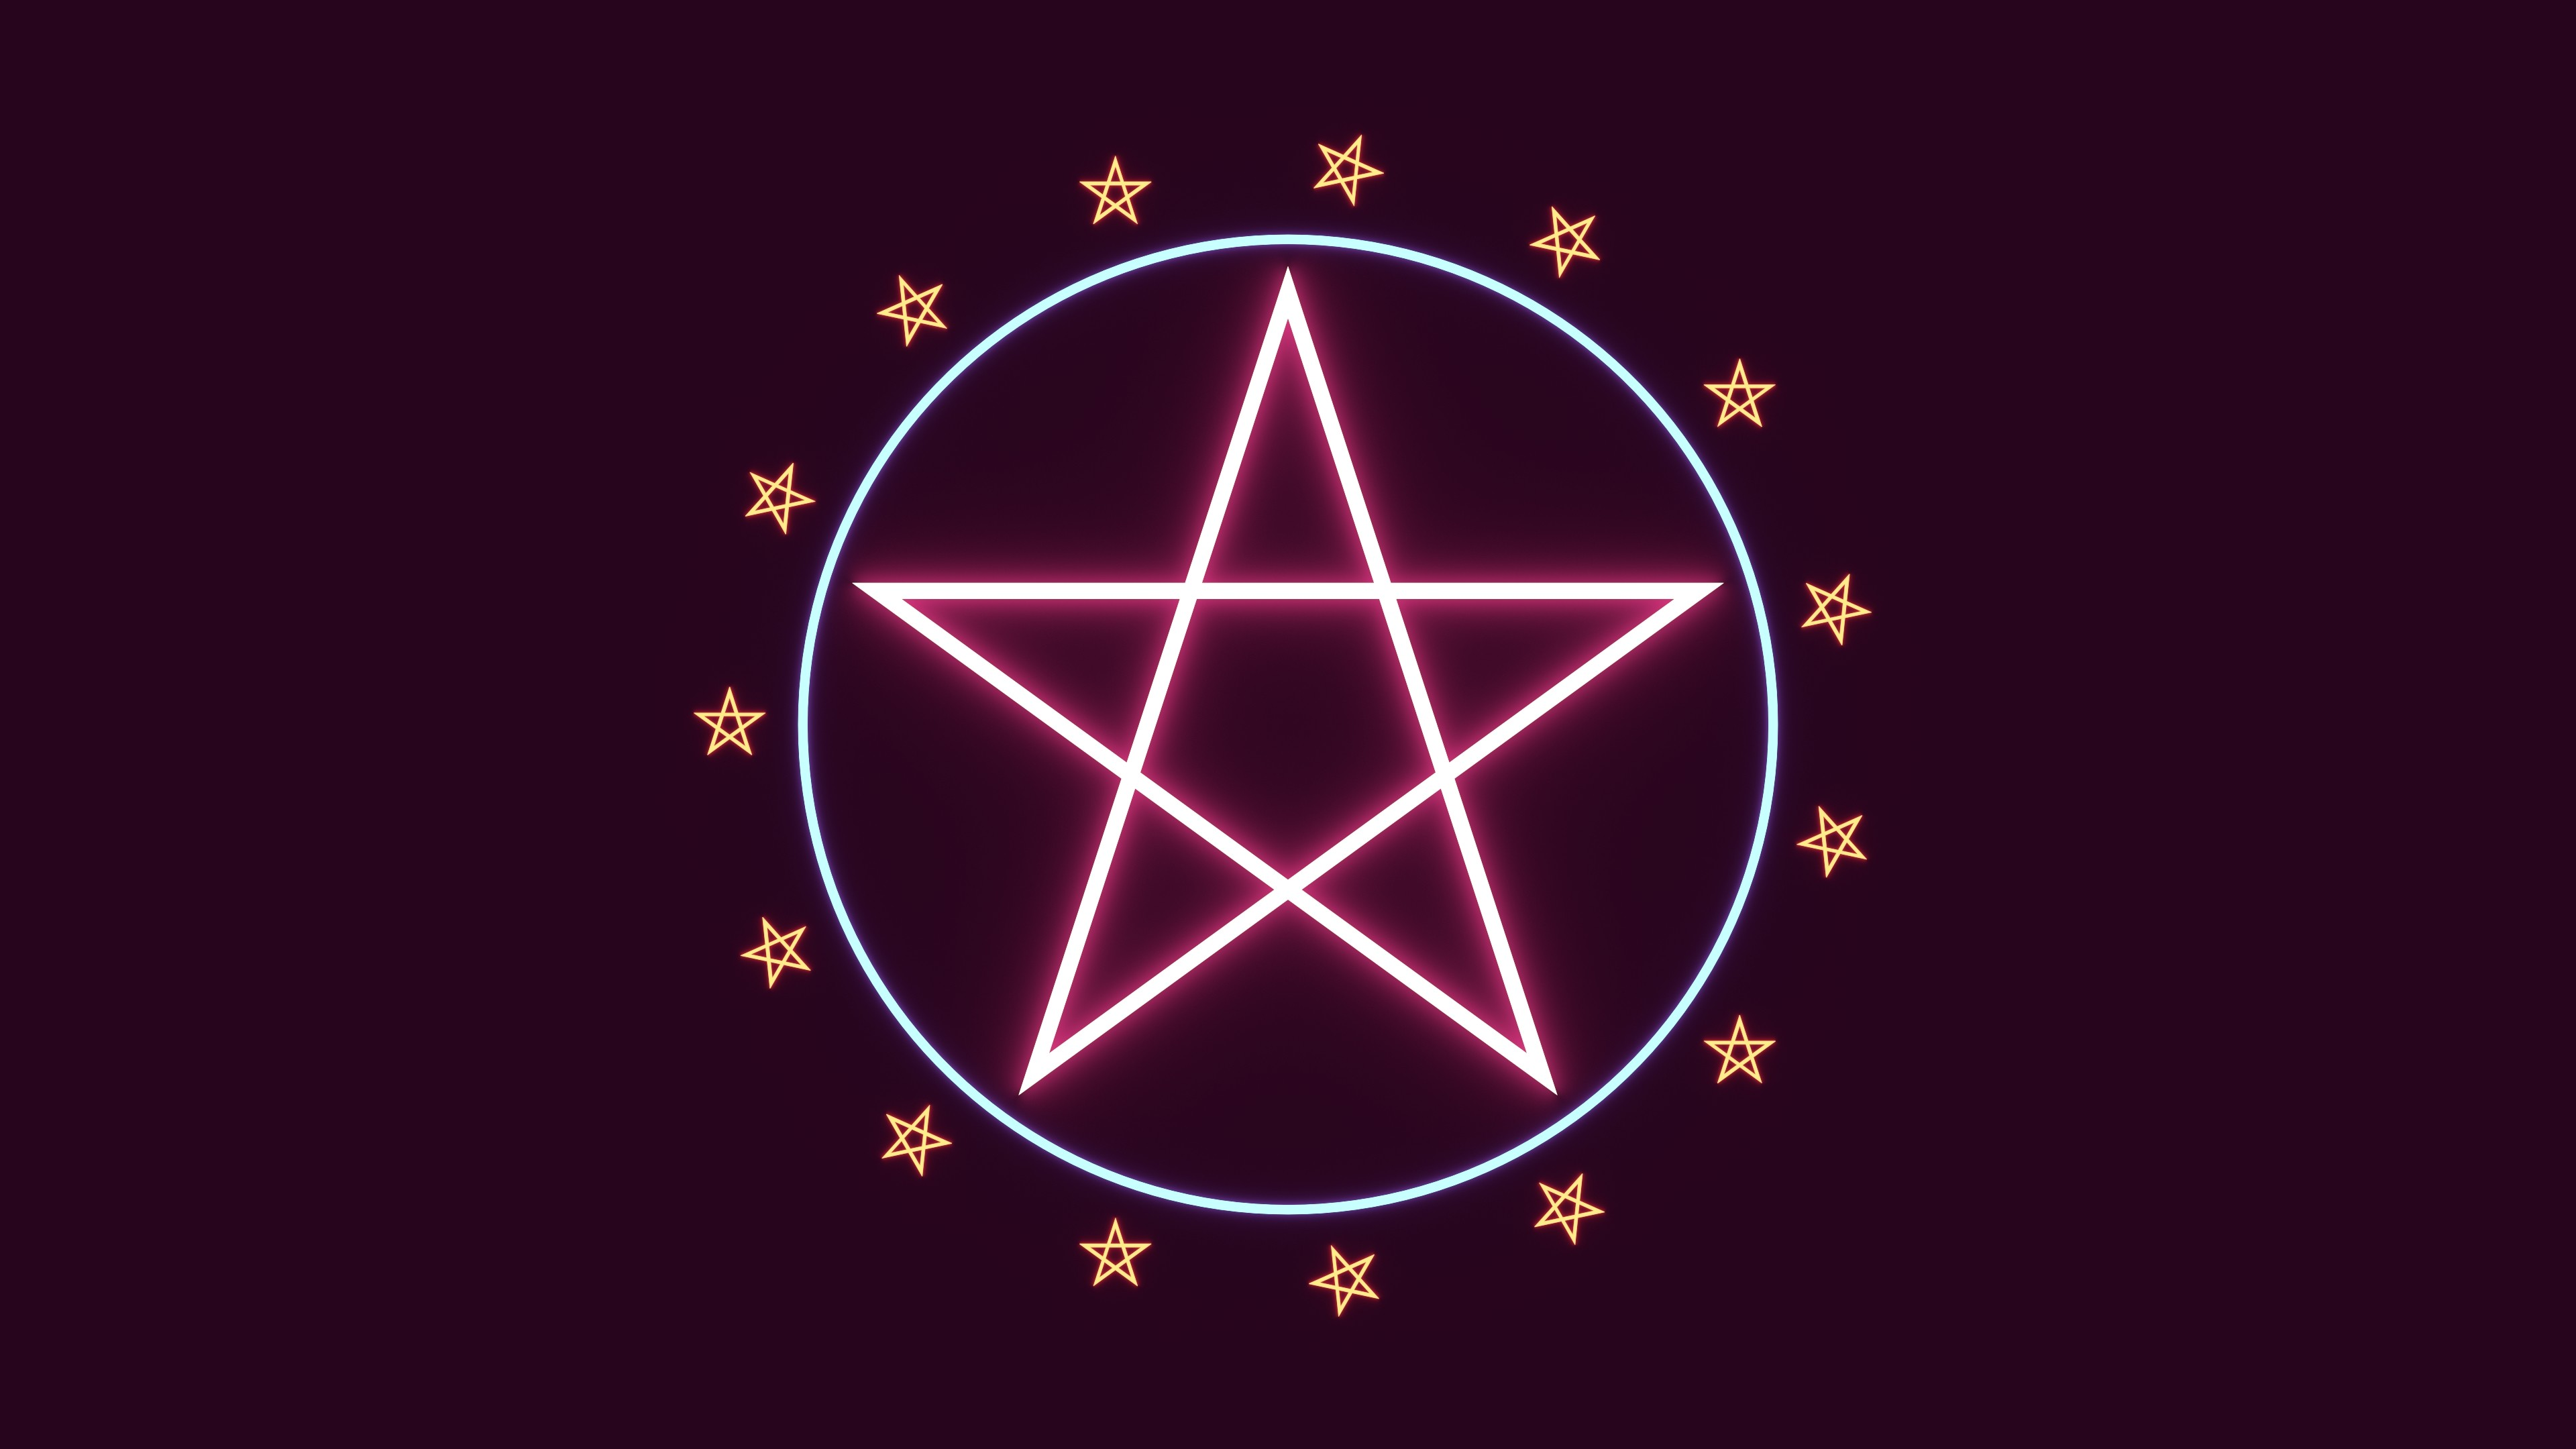 HD Wallpaper   Background ID:571756. Abstract Pentagram